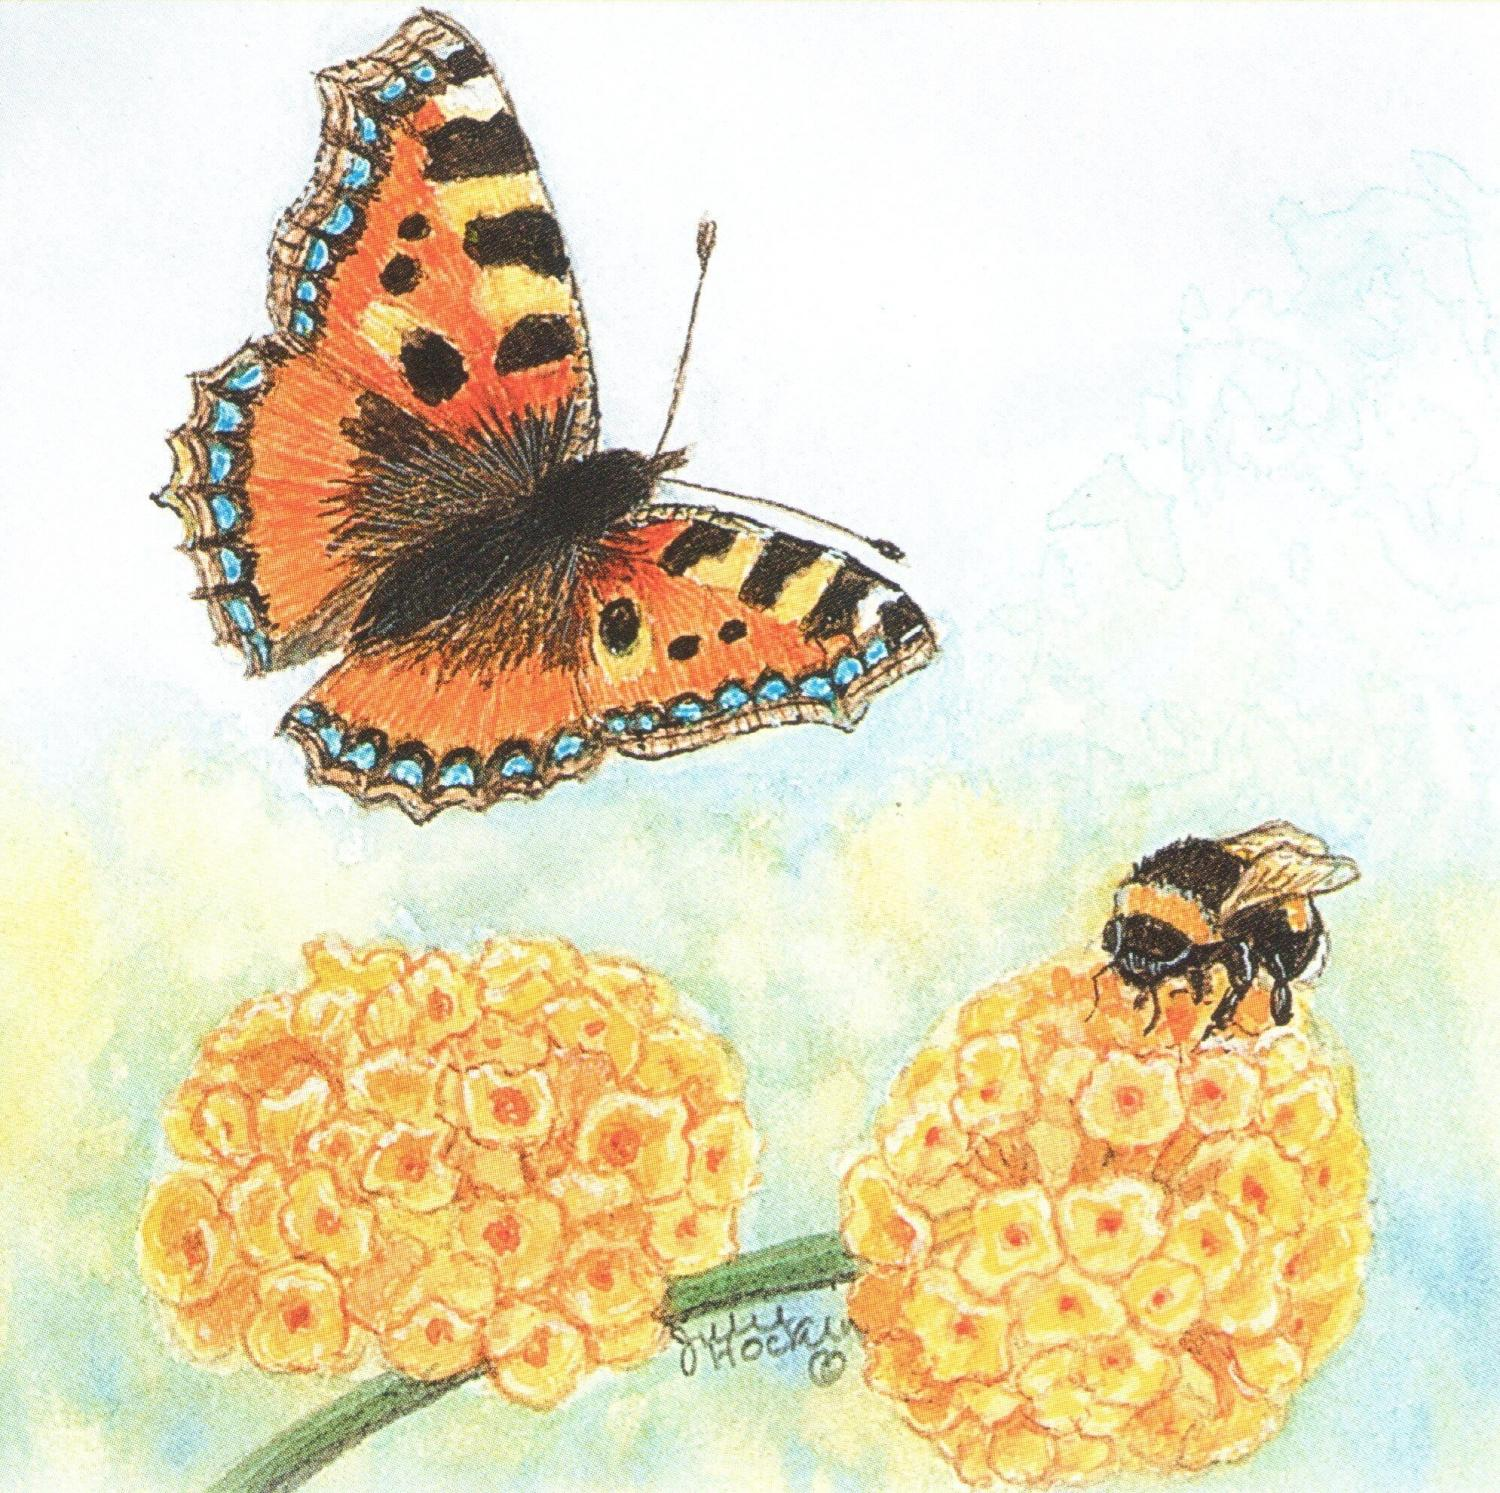 Small Magnetic Fridge Pad - Tortoiseshell But